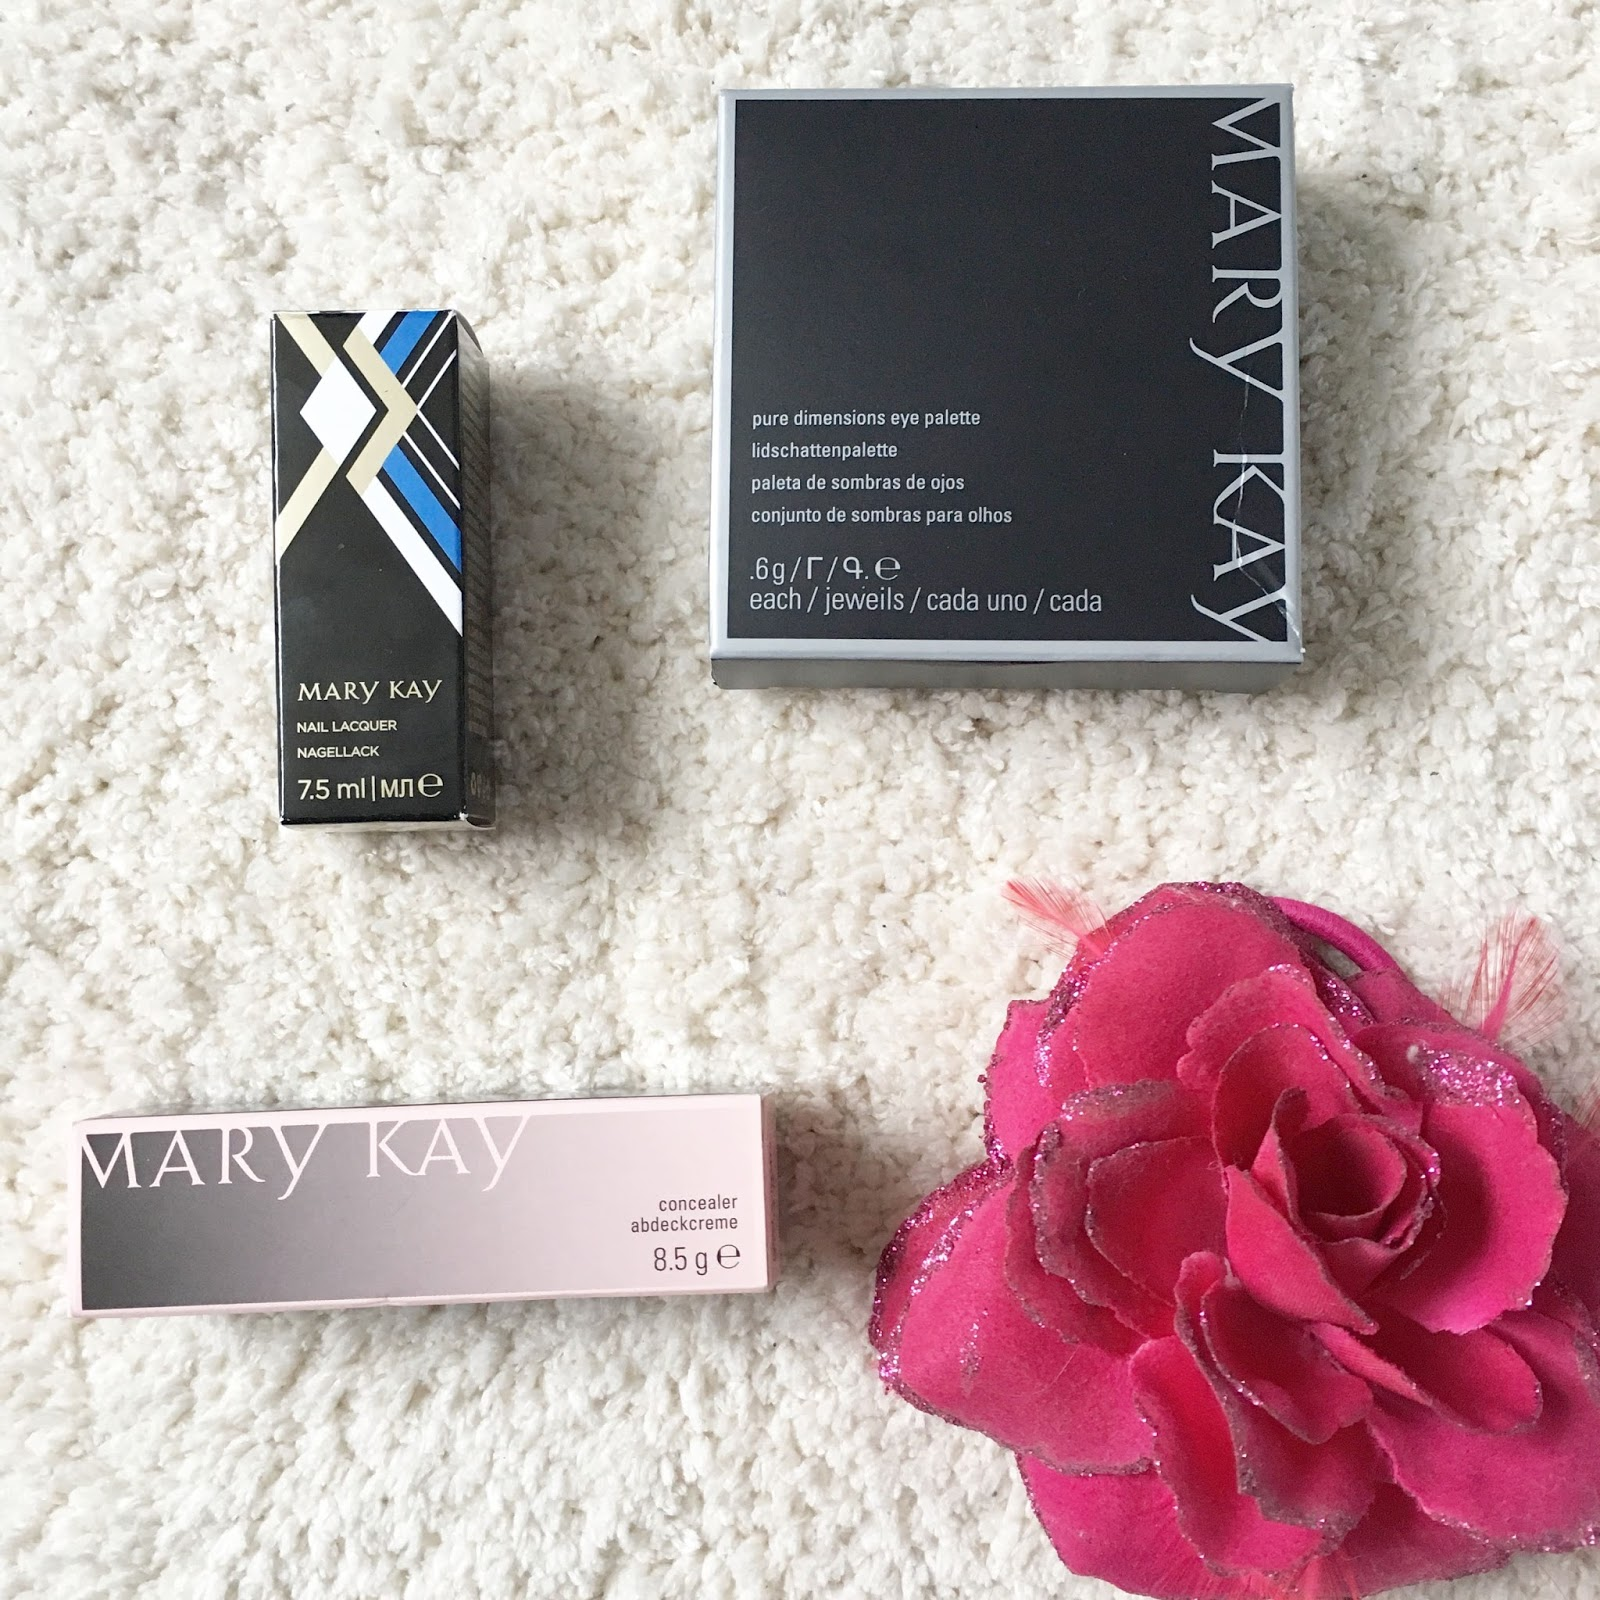 mary kay cosmetics About beauty blog mary kay catalogs all natural beauty face basics body basics love your skin diy skincare treat yourself natural remedies ancient beauty.